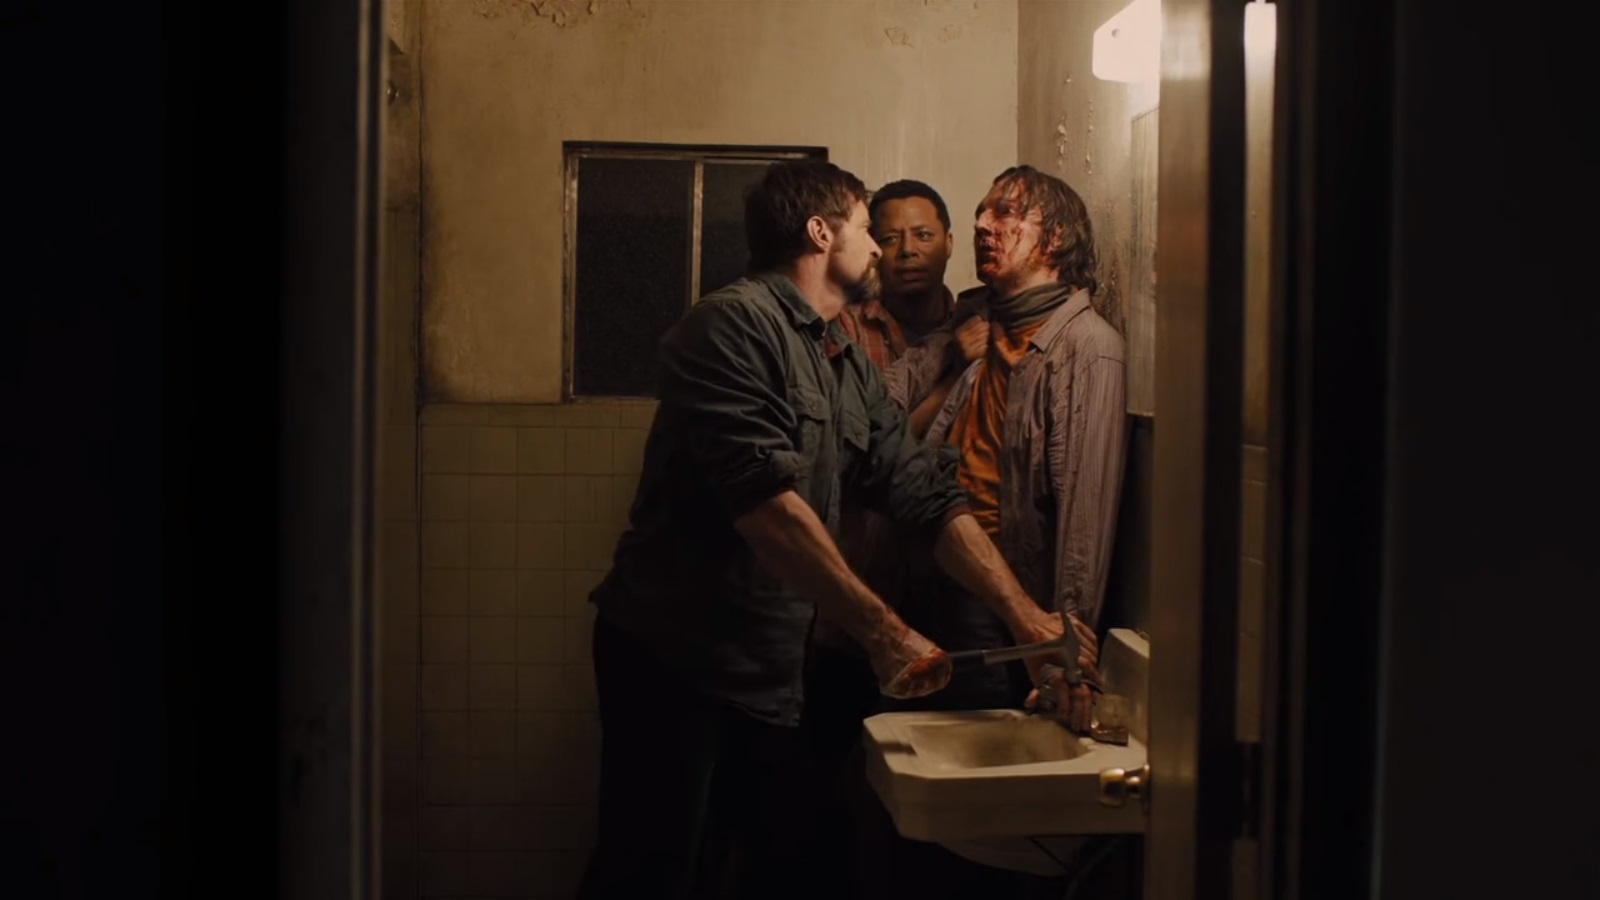 Hugh Jackman, along with Terrence Howard, prepares to torture Paul Dano with a hammer in Prisoners (2013)